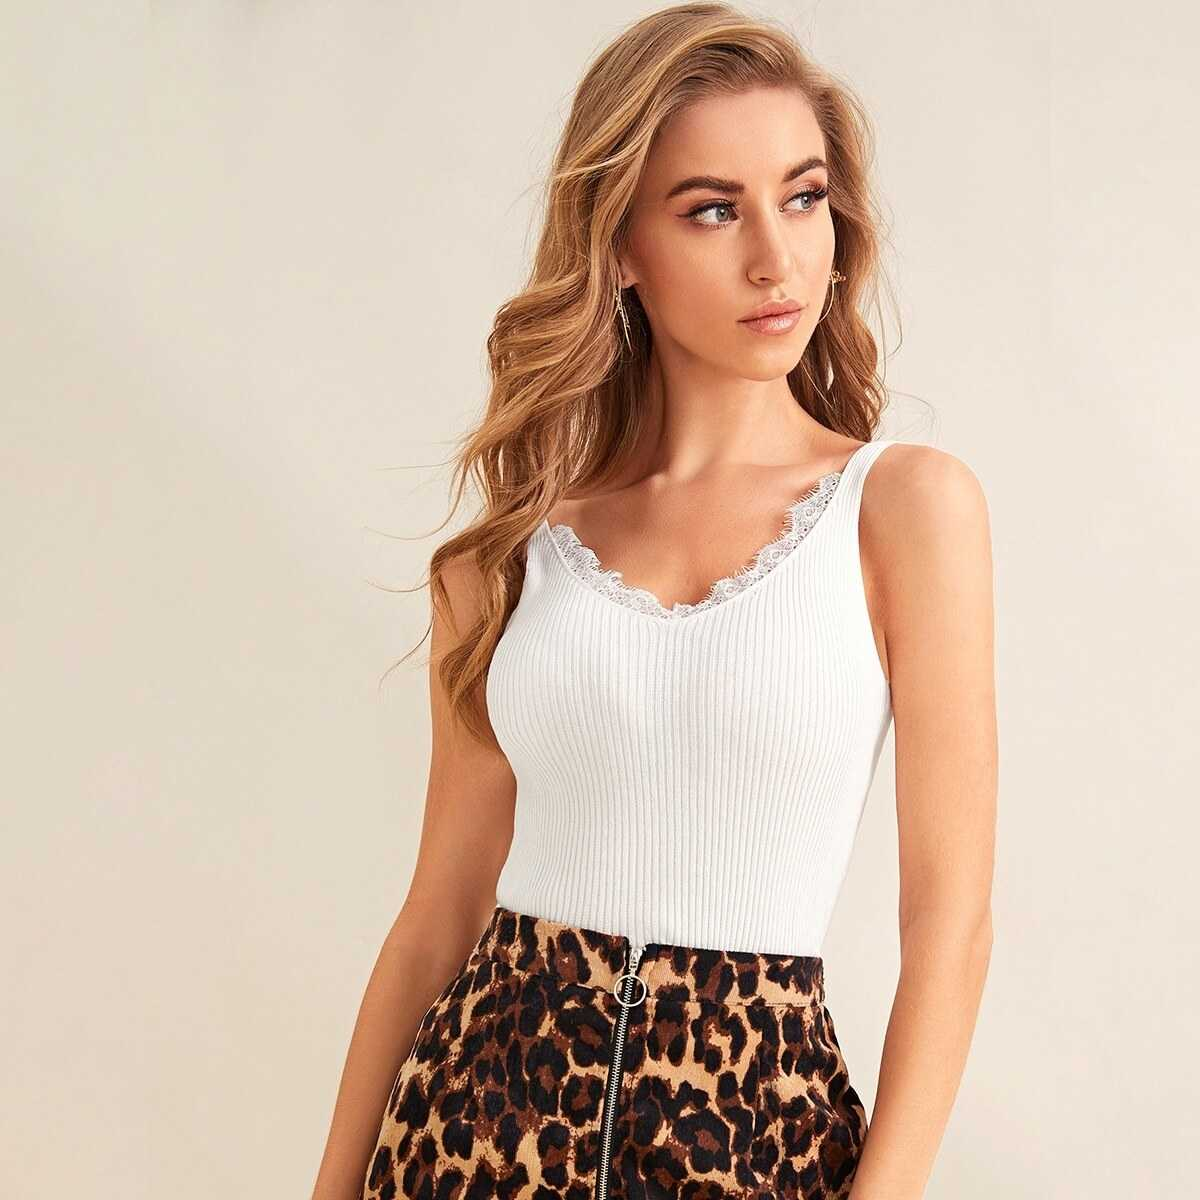 Lace Panel Solid Knit Top in White by ROMWE on GOOFASH